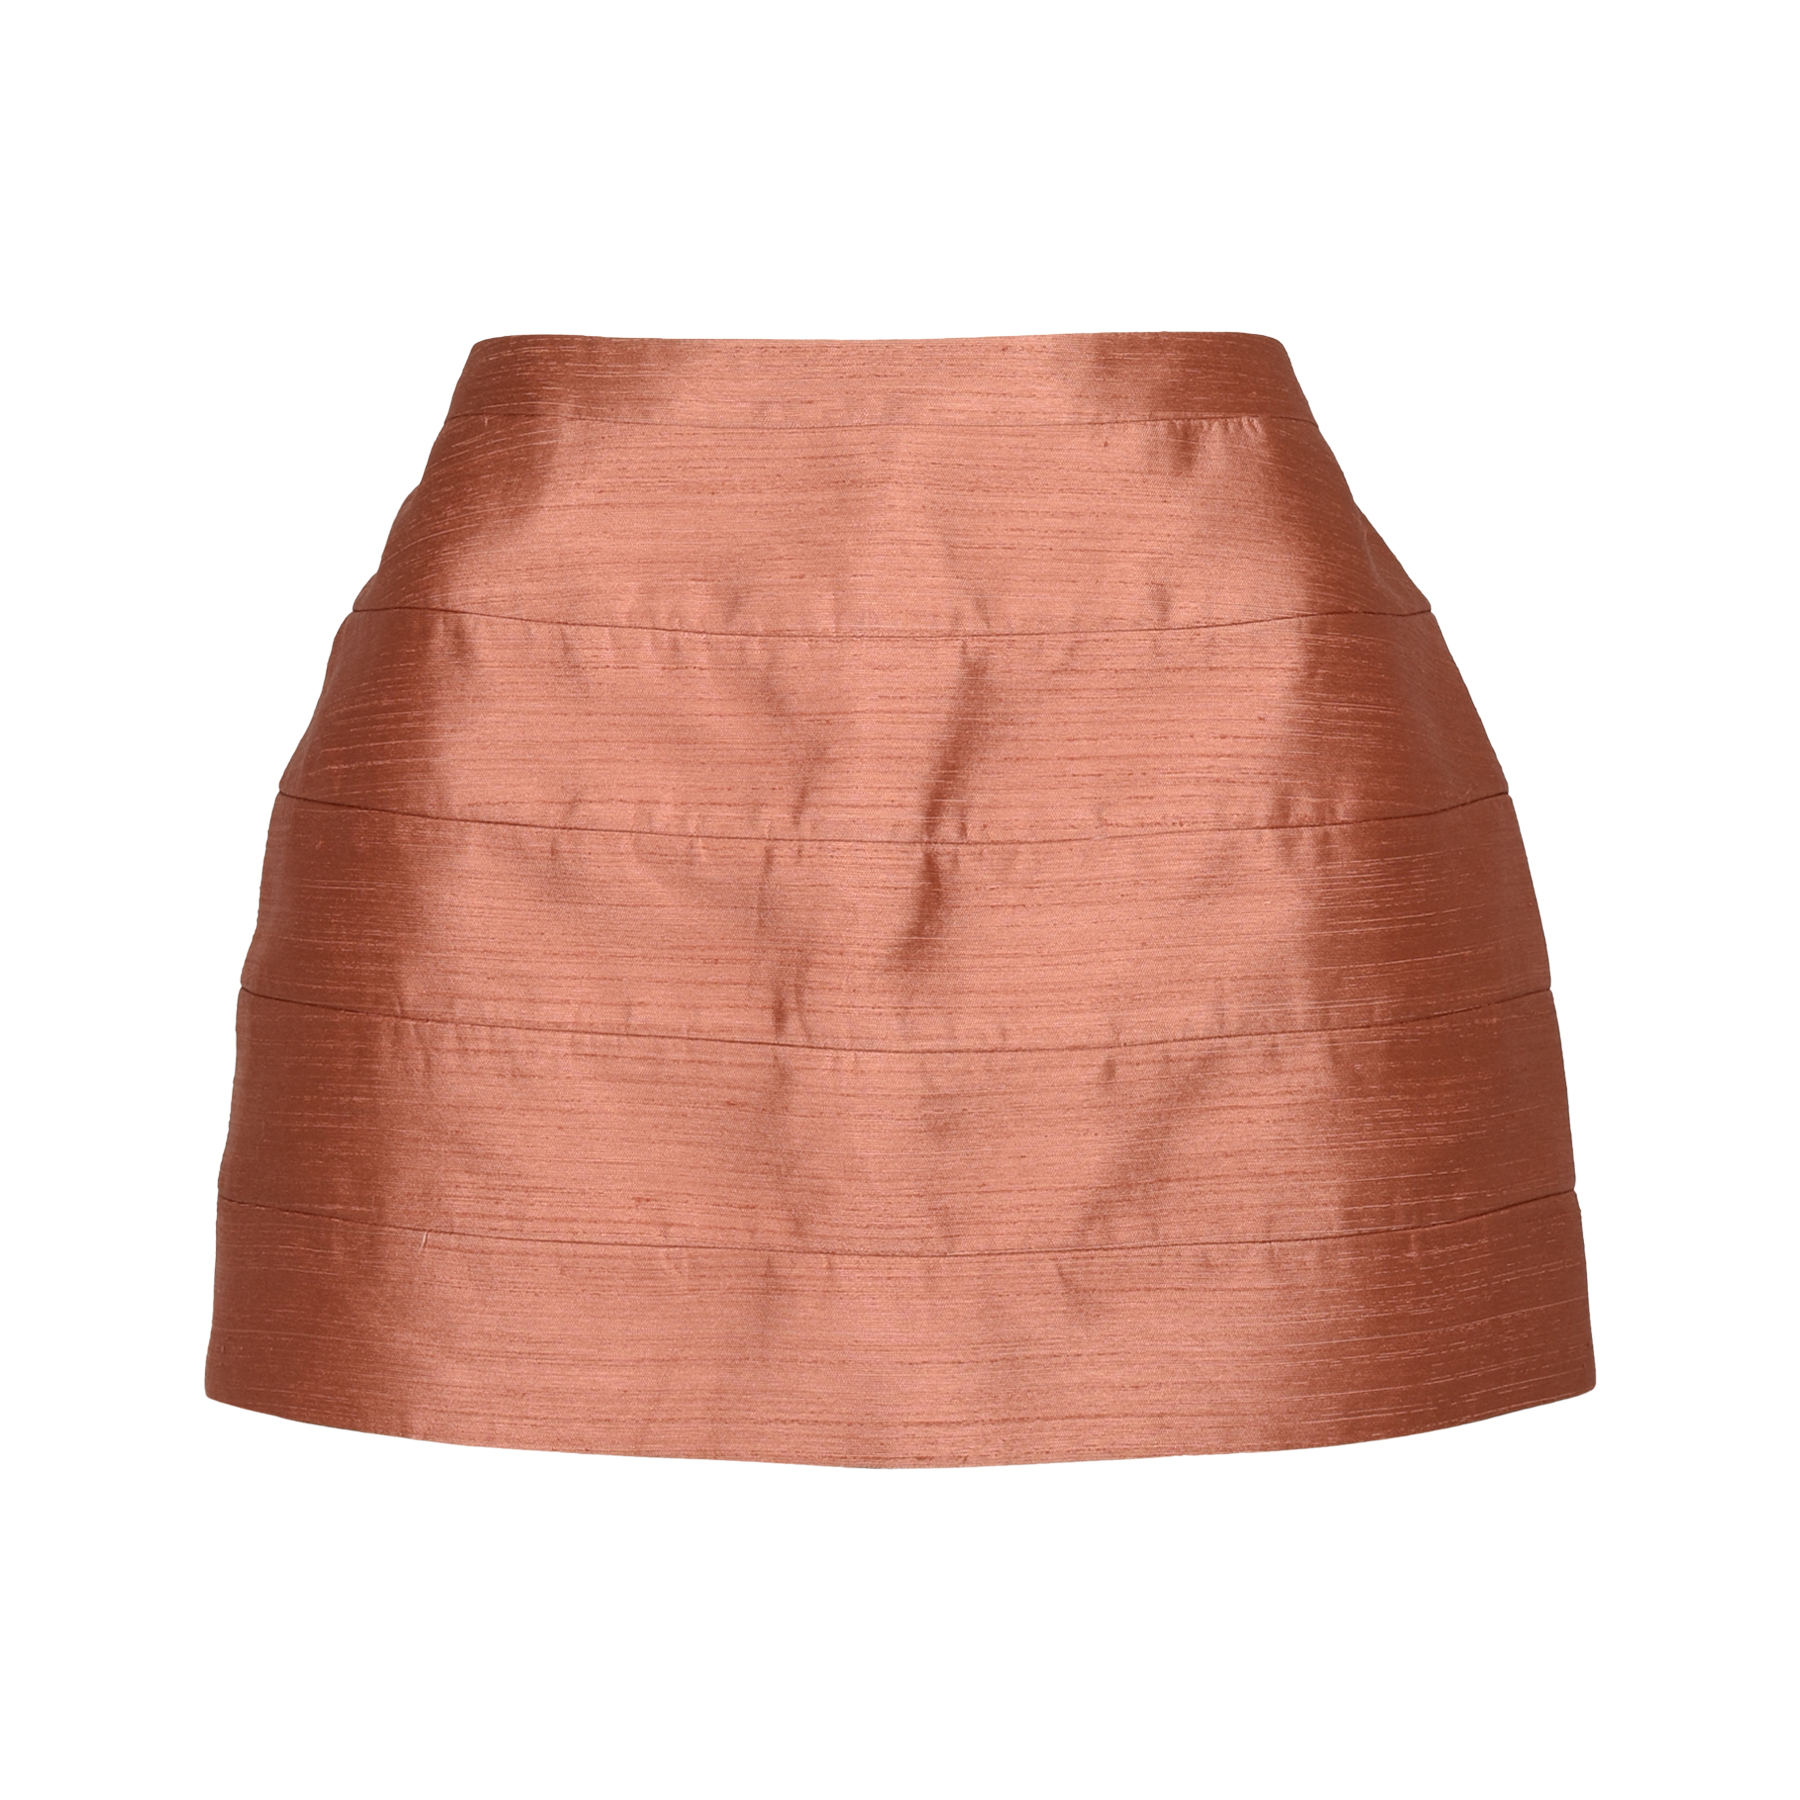 19f4a7051b Authentic Second Hand Balenciaga Shantung Silk Mini Skirt (PSS-343-00020) -  THE FIFTH COLLECTION